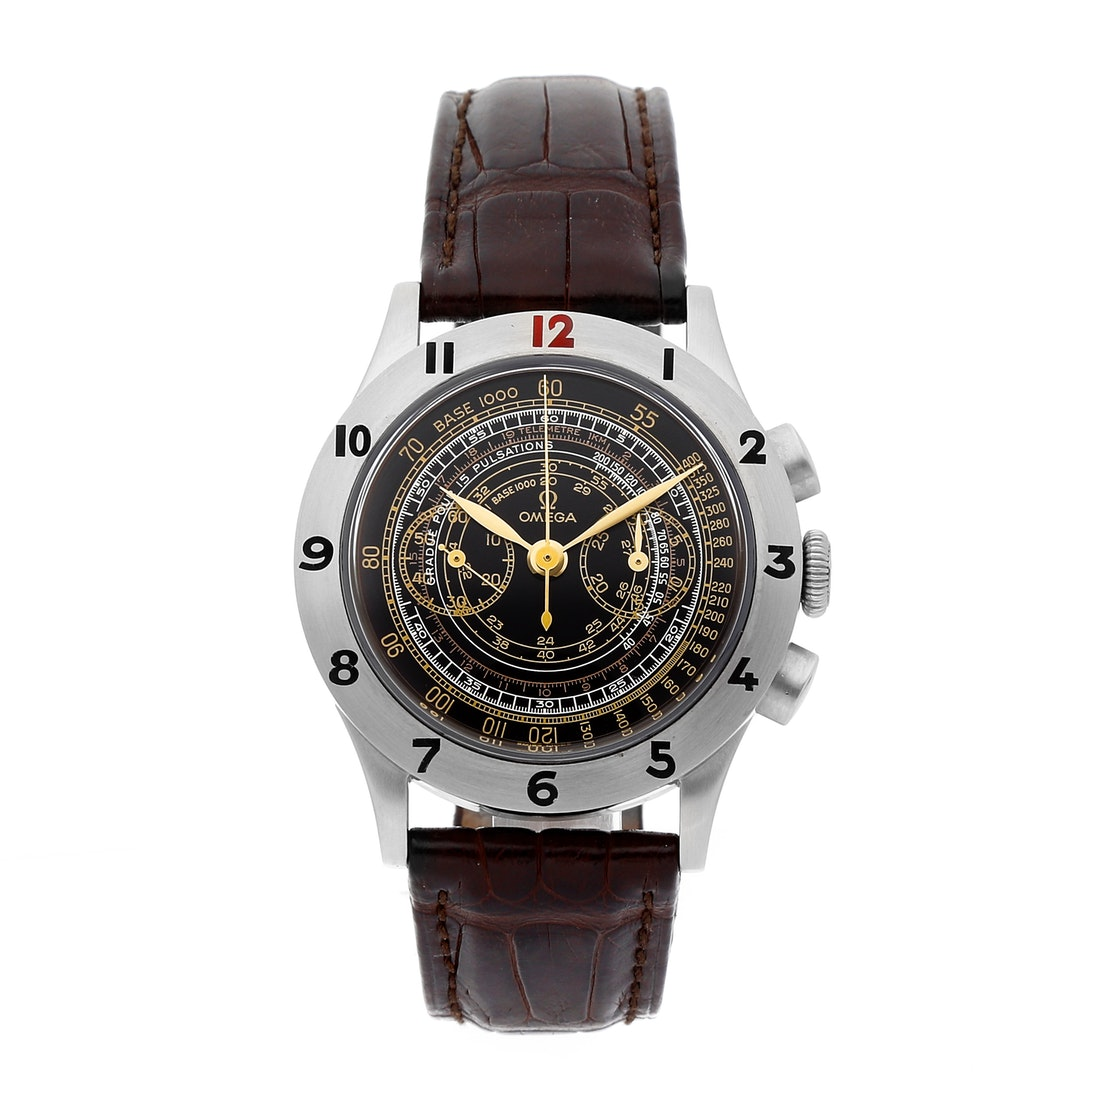 """Omega Museum Collection N° 3 """"Officers 1945"""" 5702.50.02"""